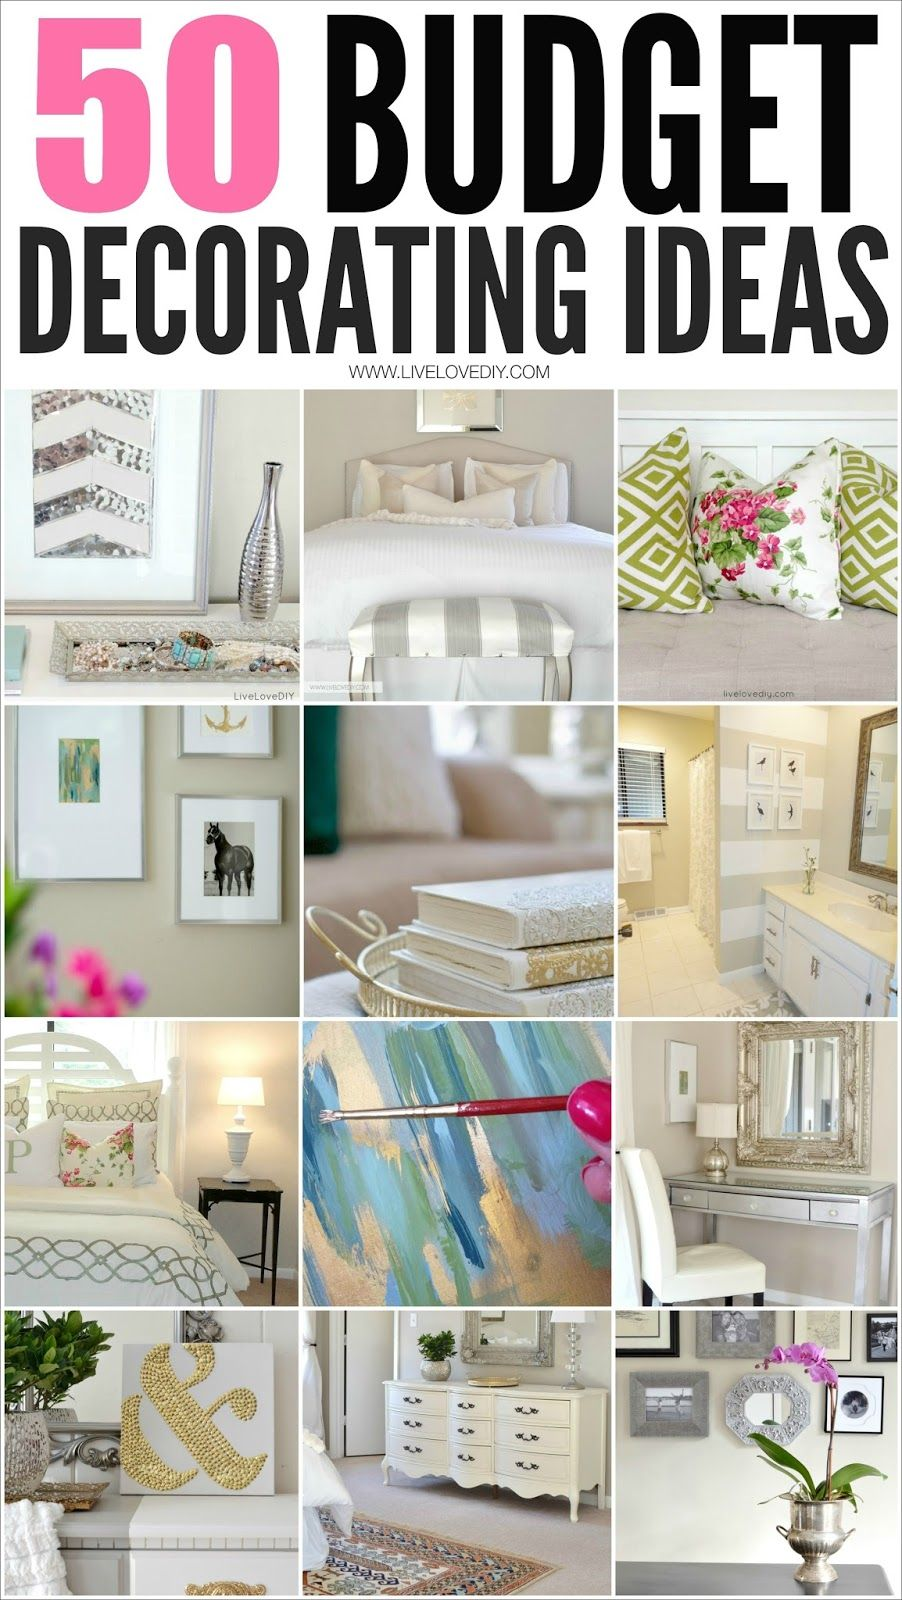 Decorate House 50 budget decorating tips you should know! - livelovediy | home